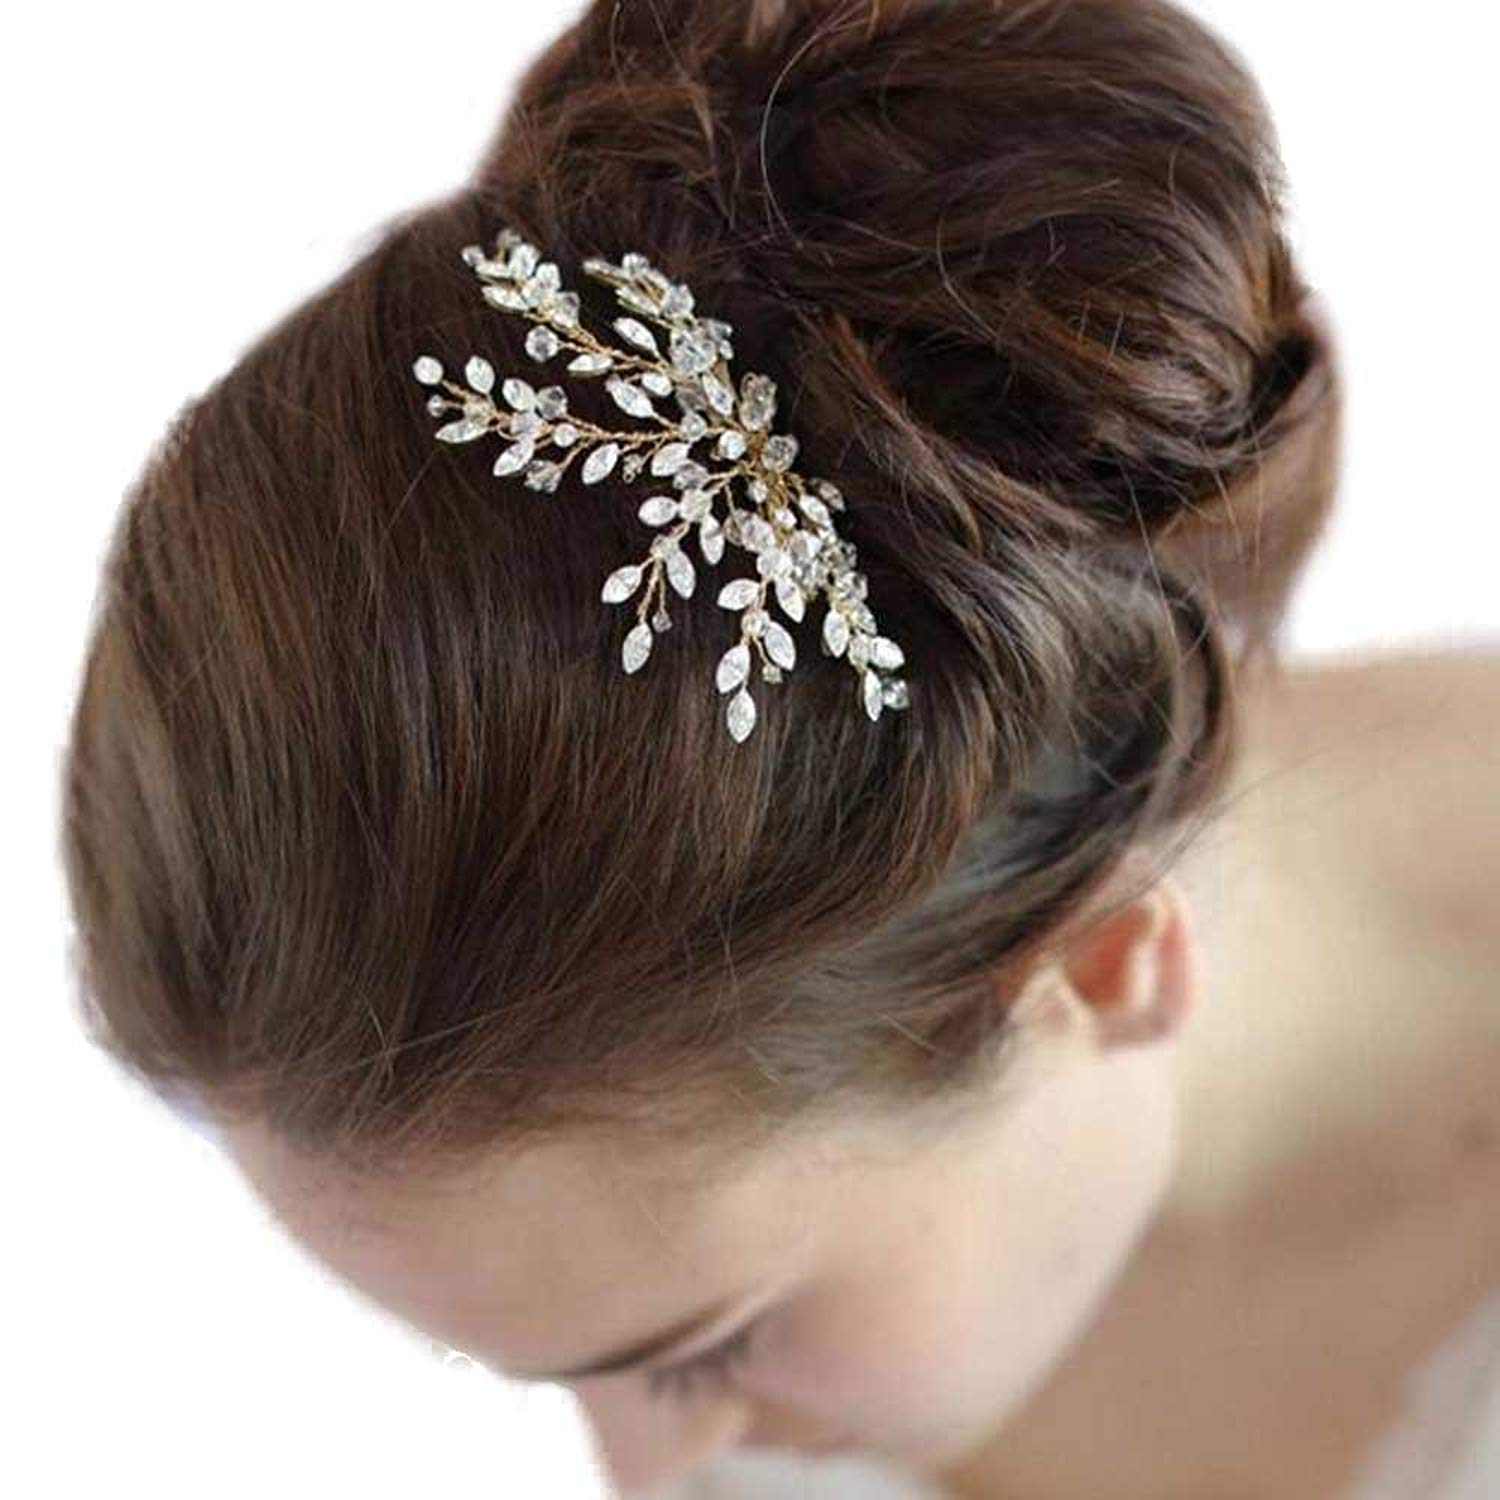 Get Quotations · Missgrace Women s Wedding Hair Combs - Bridal Hair  Accessories Head Piece Vintage Wedding Crystal Hair Combs 694f566b2